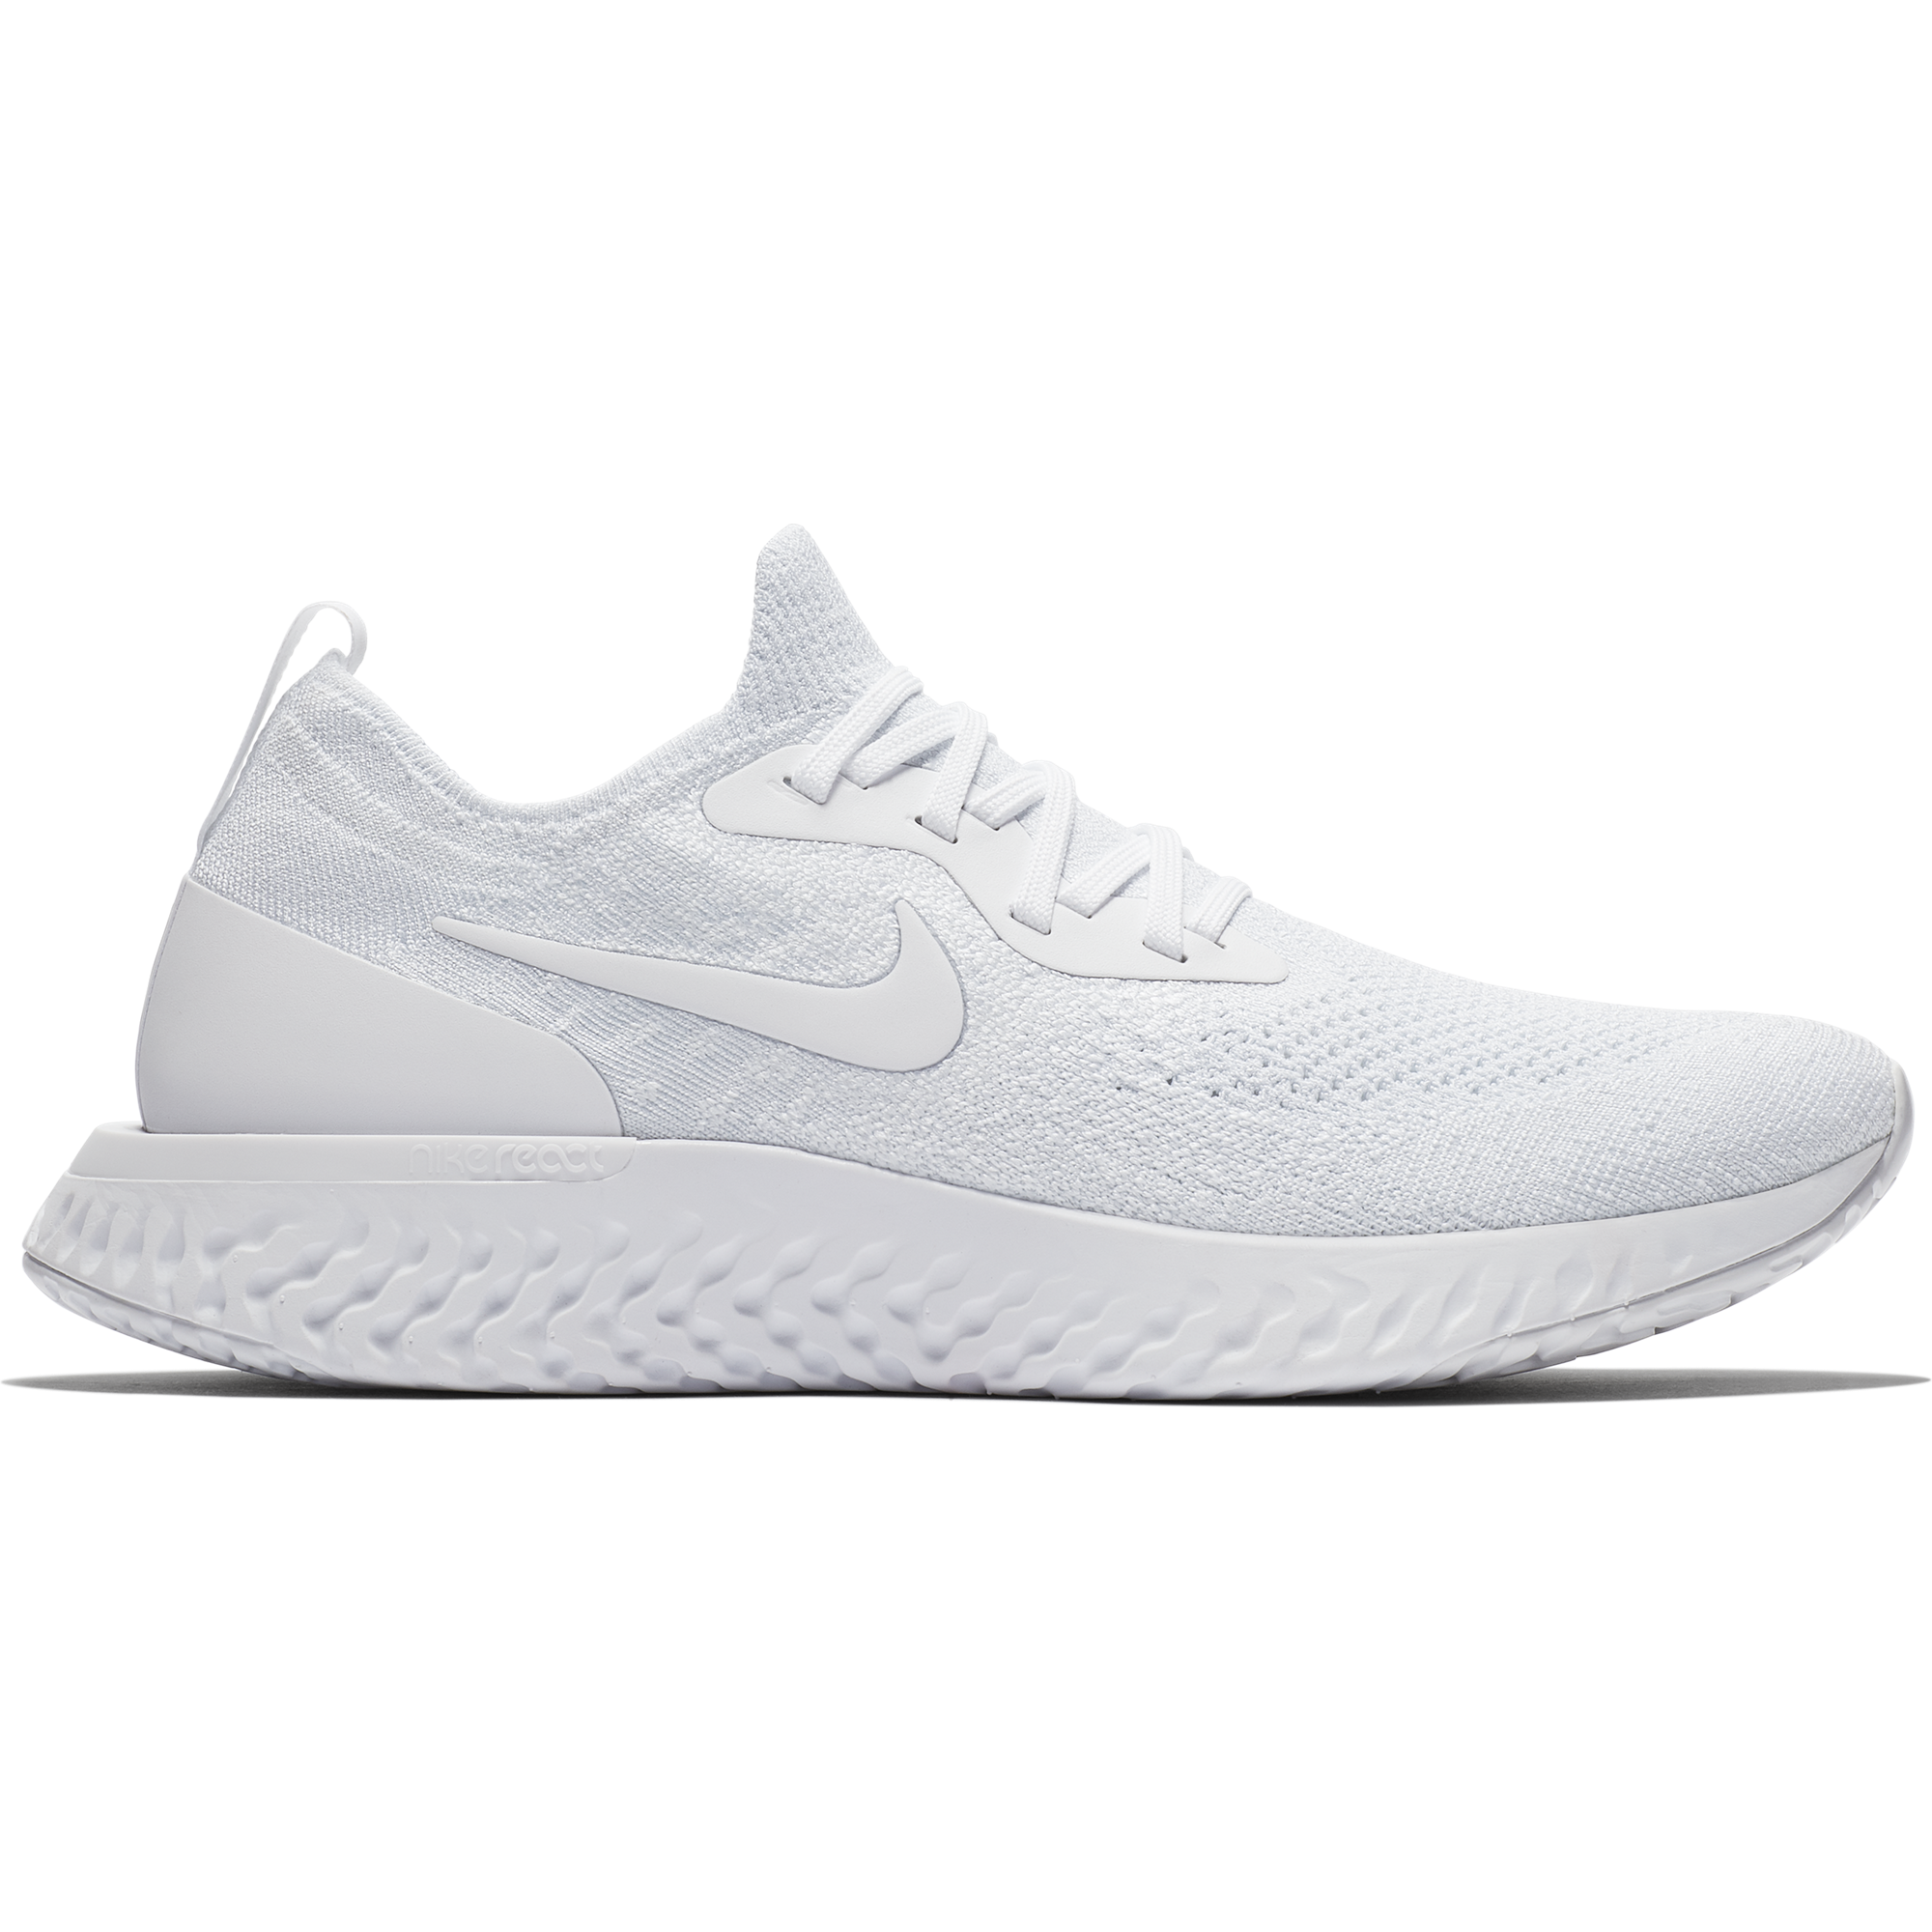 d803dd76f87 Men s Epic React Flyknit Running Shoe - True White White Pure Platinum –  Gazelle Sports